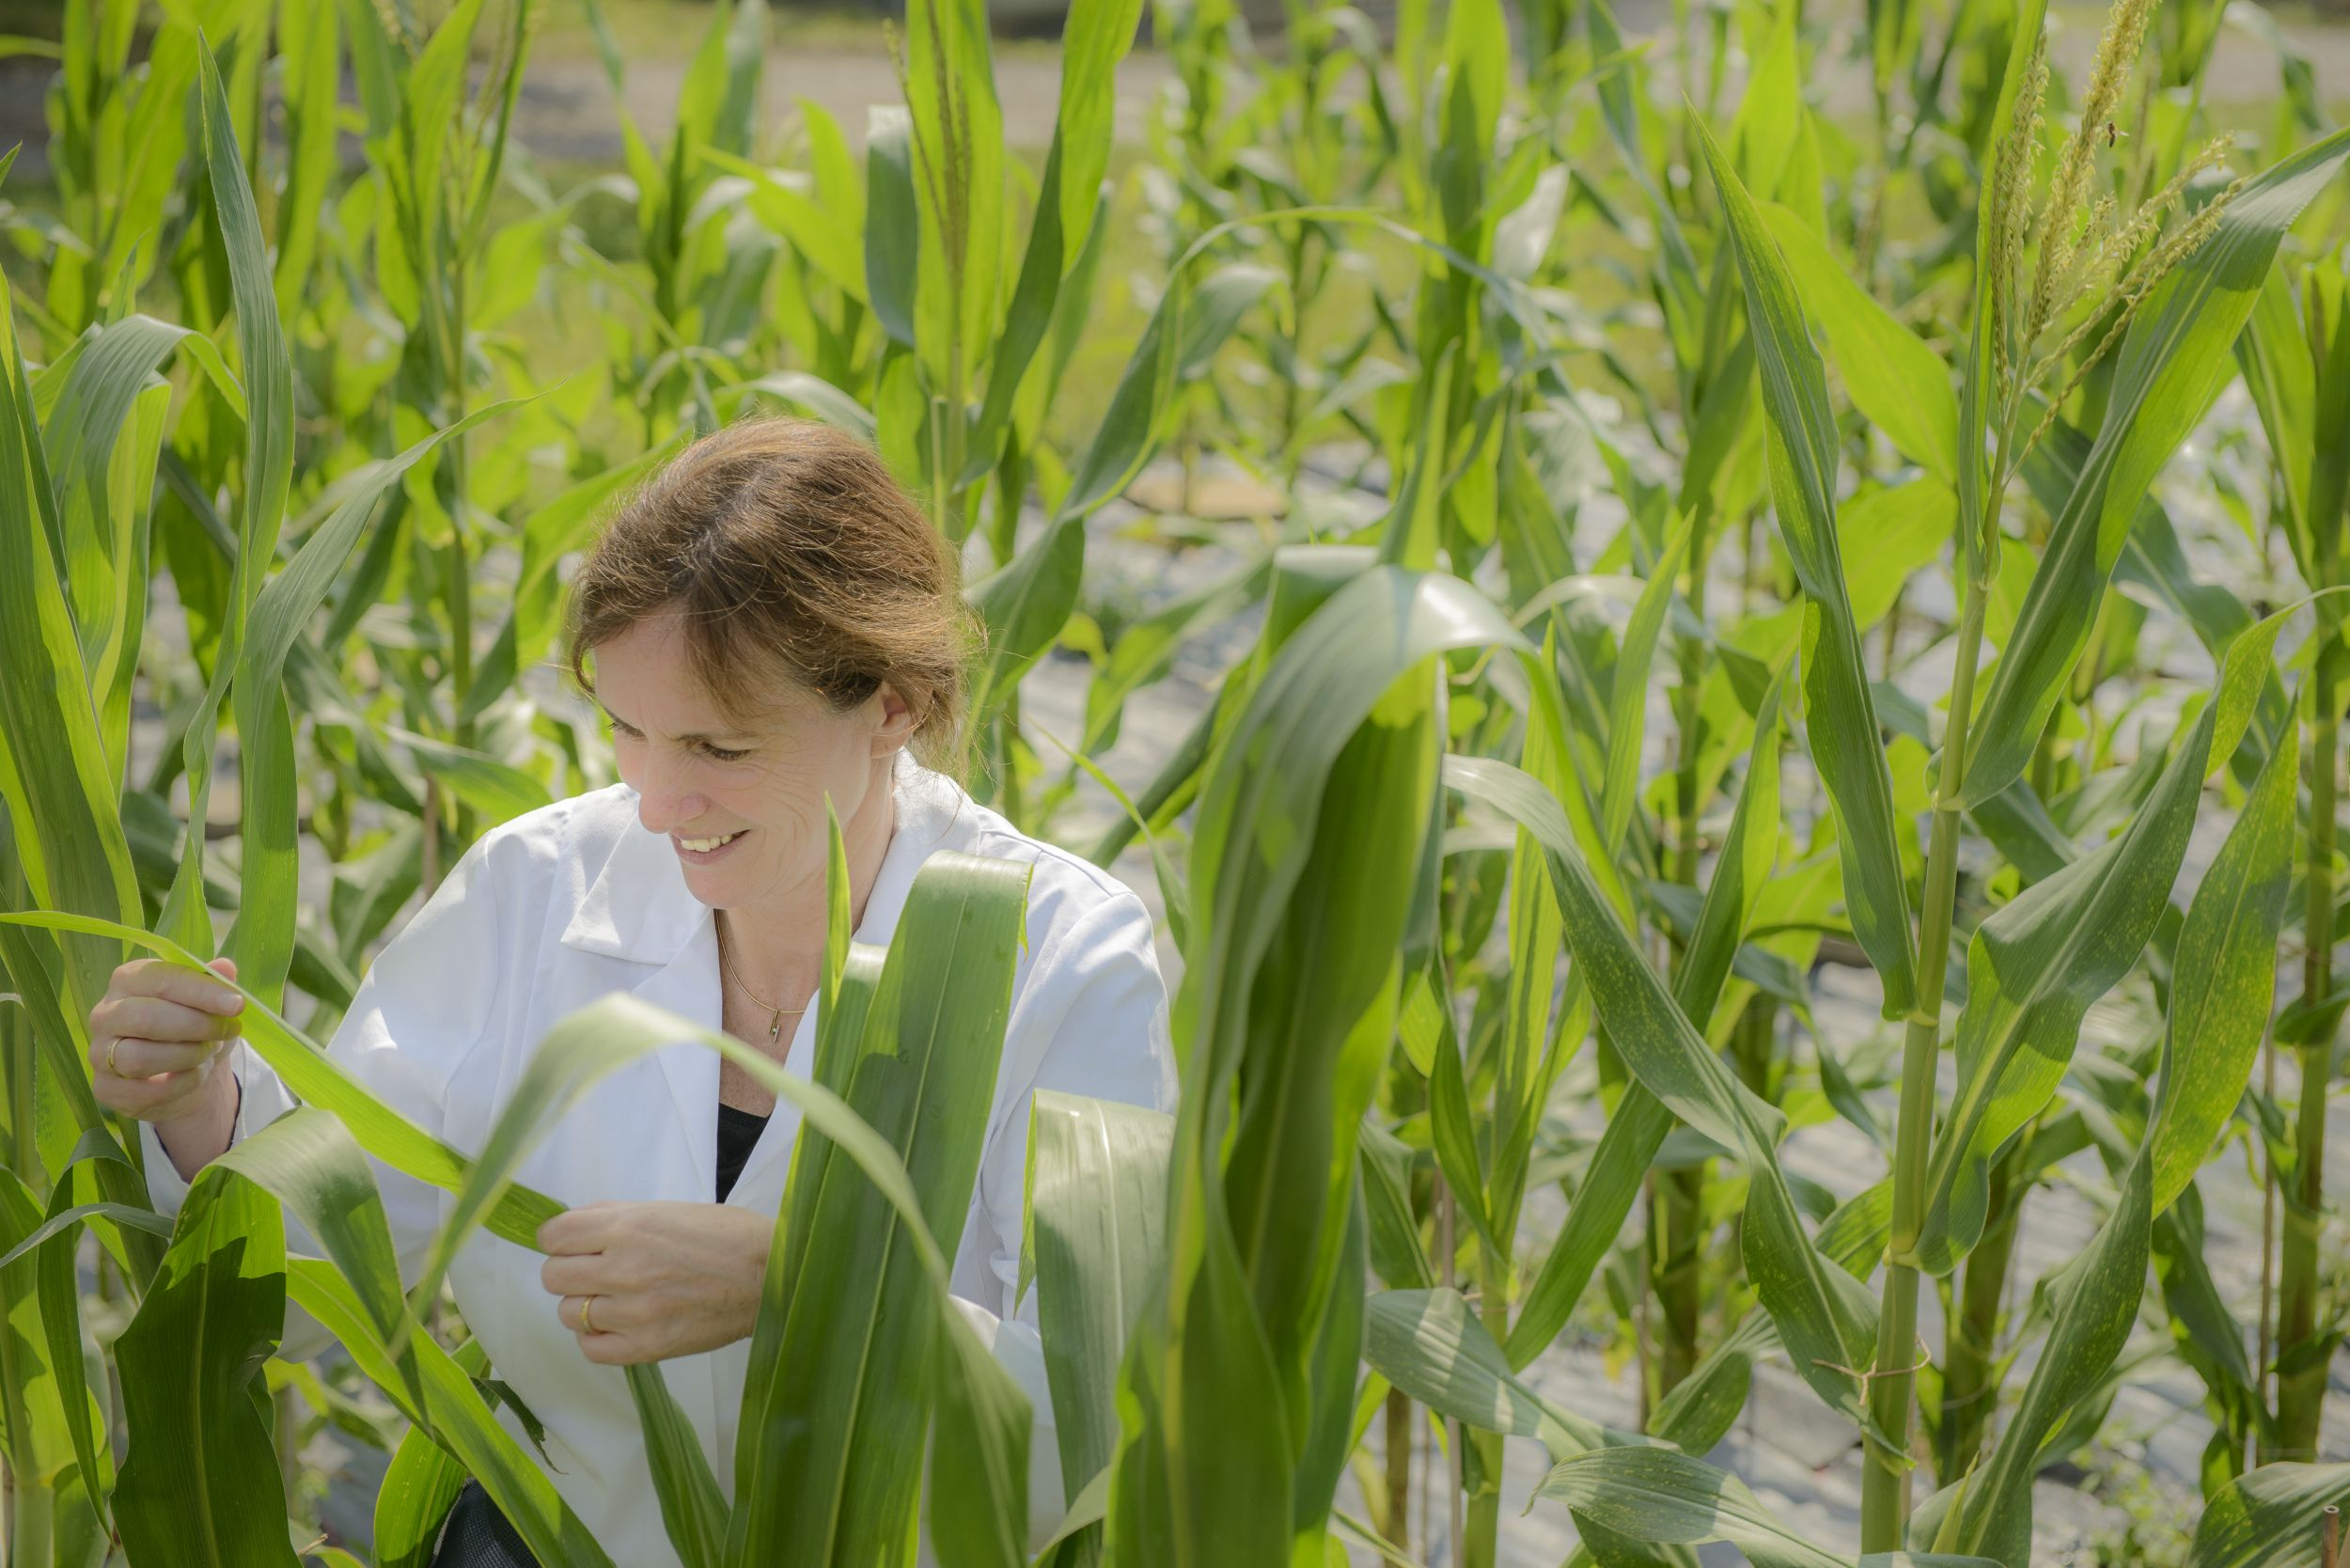 Researcher investigating a maize leave in a test corn field